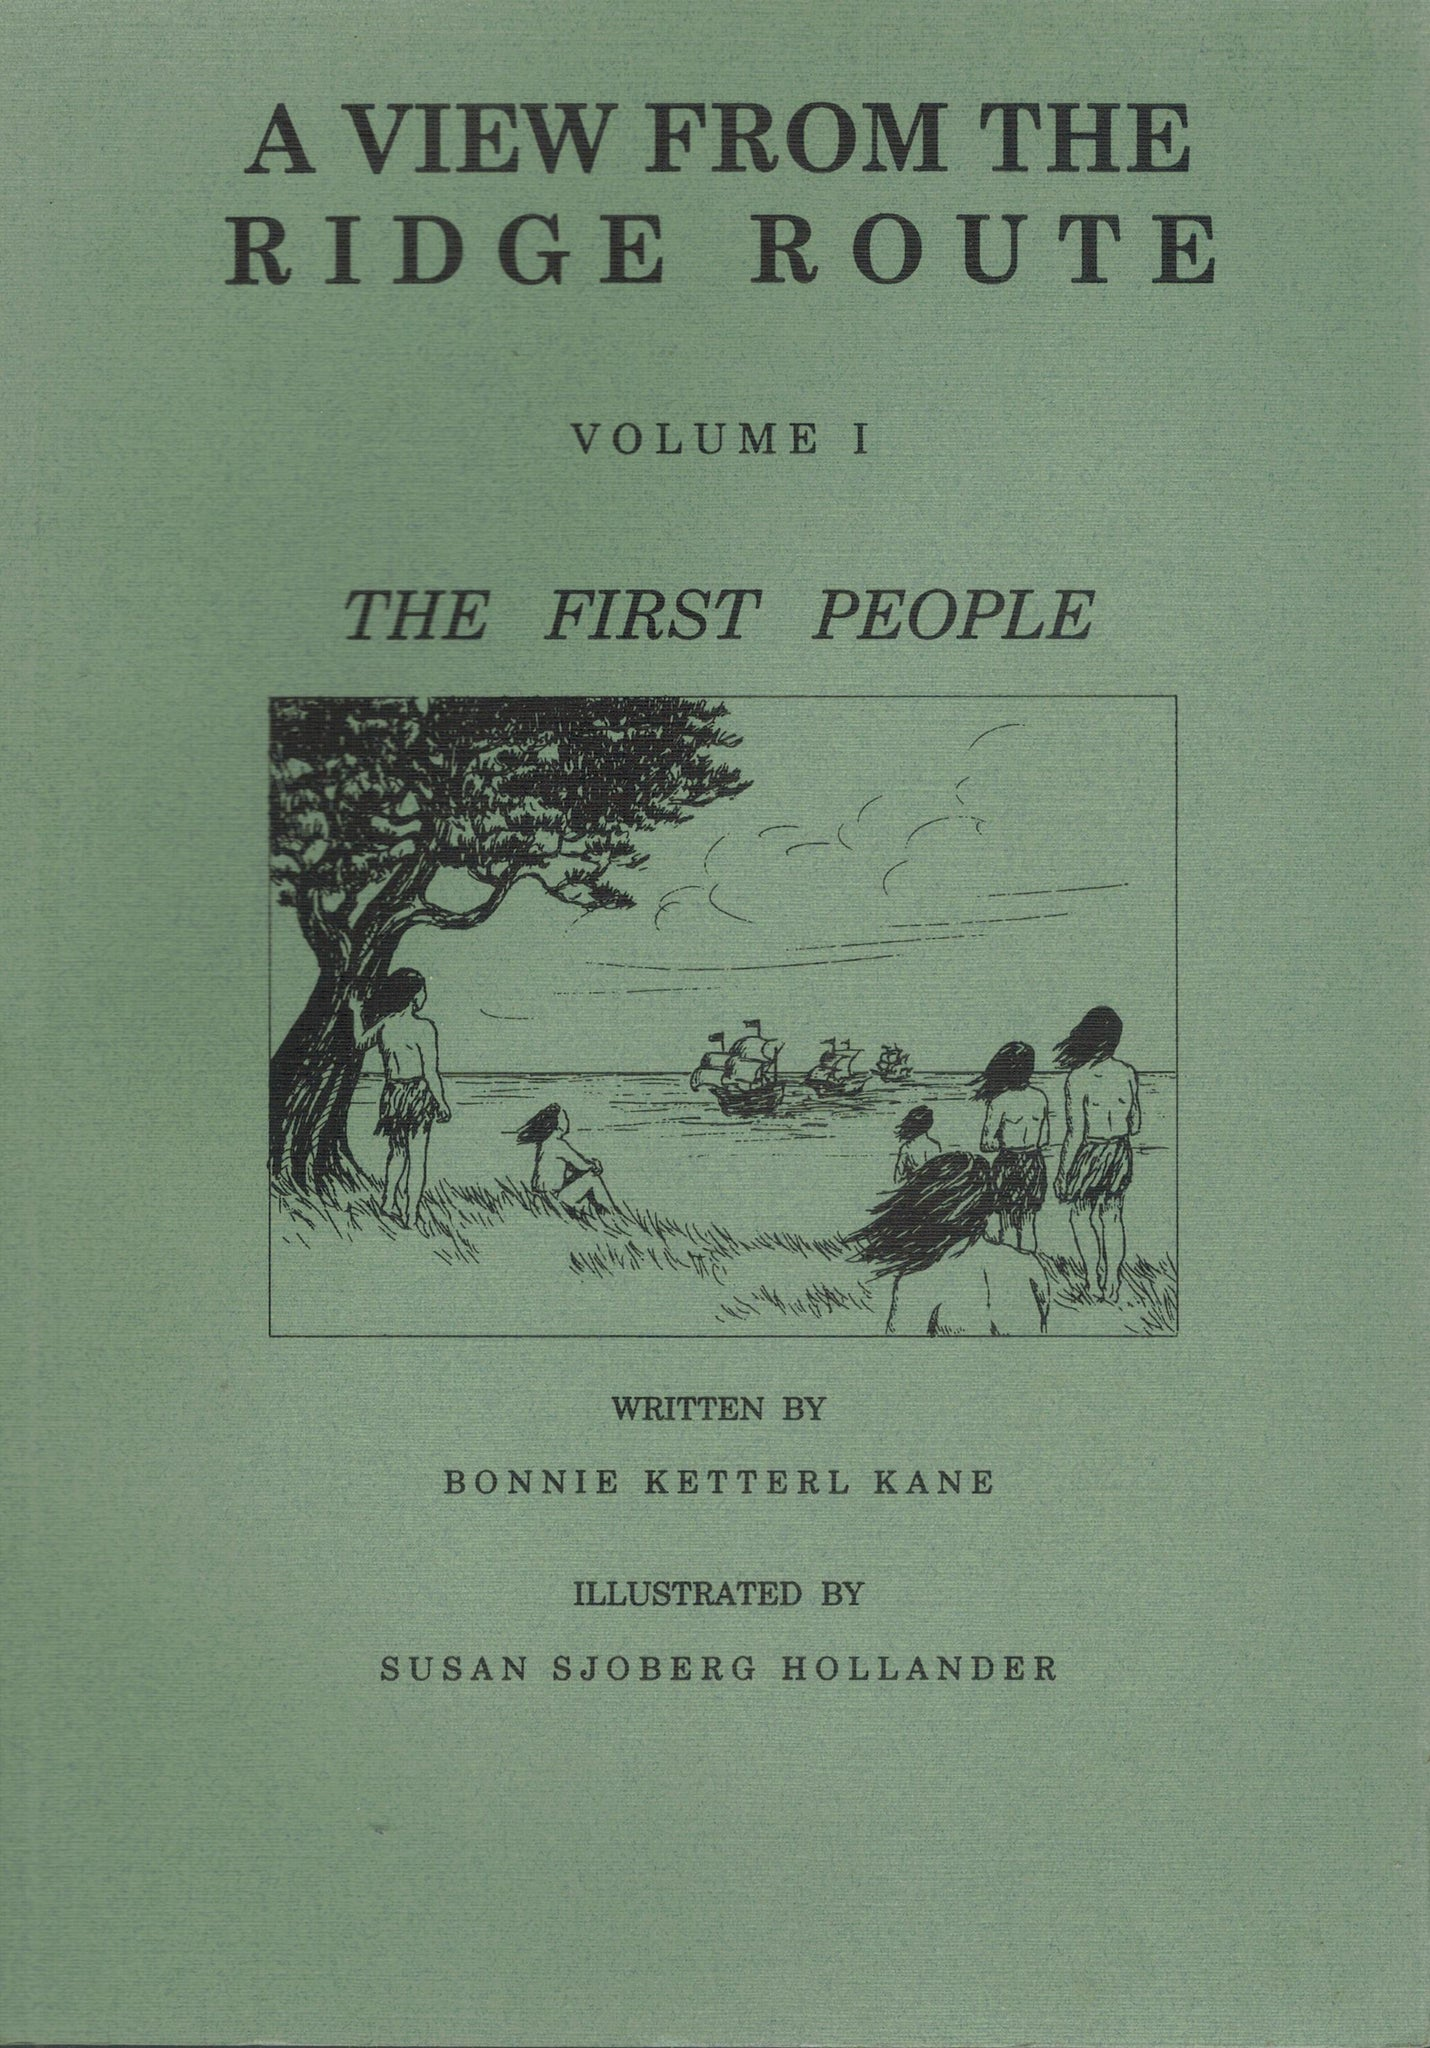 A View from the Ridge Route Volume 1: the First People - books-new